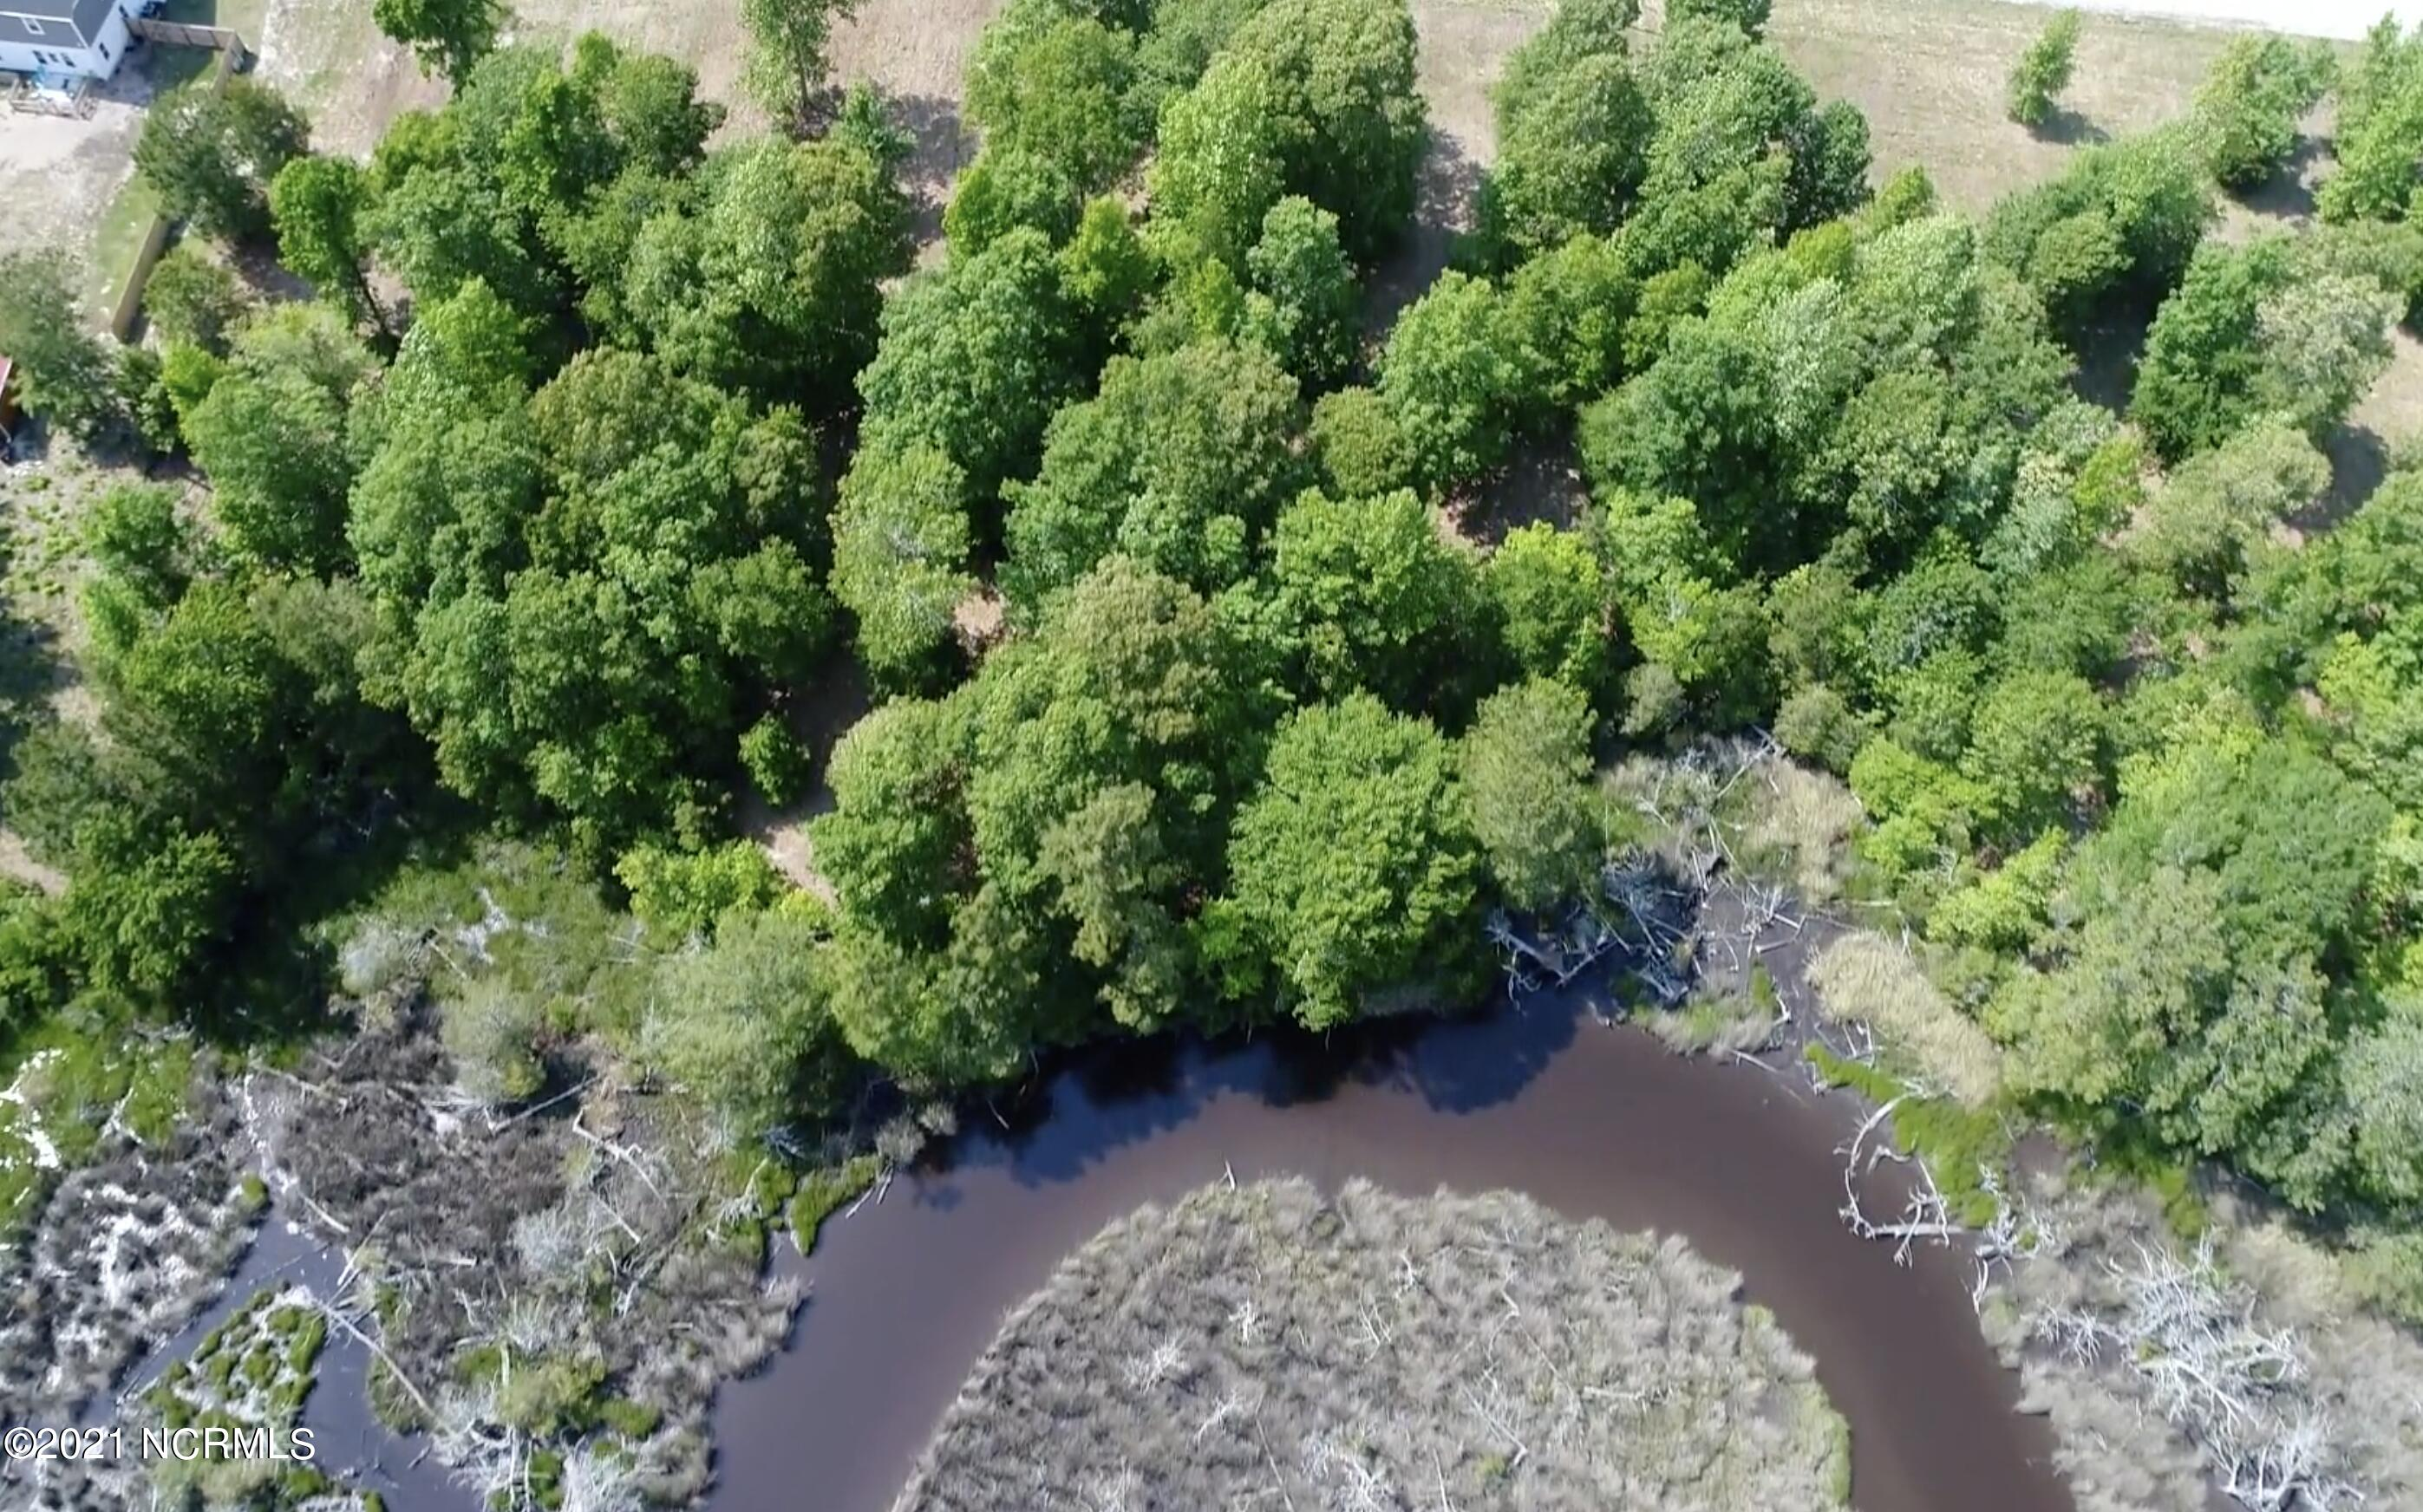 Build your dream home on this 2.31 acre waterfront lot with privacy and amazing views. This property is just minutes to the Camp Lejeune back gate, Topsail Beaches, schools and shopping. No HOA and no restrictions. Bring your own builder today! Water depth will suit a skiff.  Also offered with 258 Everett Yopp Drive for a total of more than 4.5 acres for your own private estate. Lot is also subdividable for two homesites.  Be sure to view the aerial video tour.